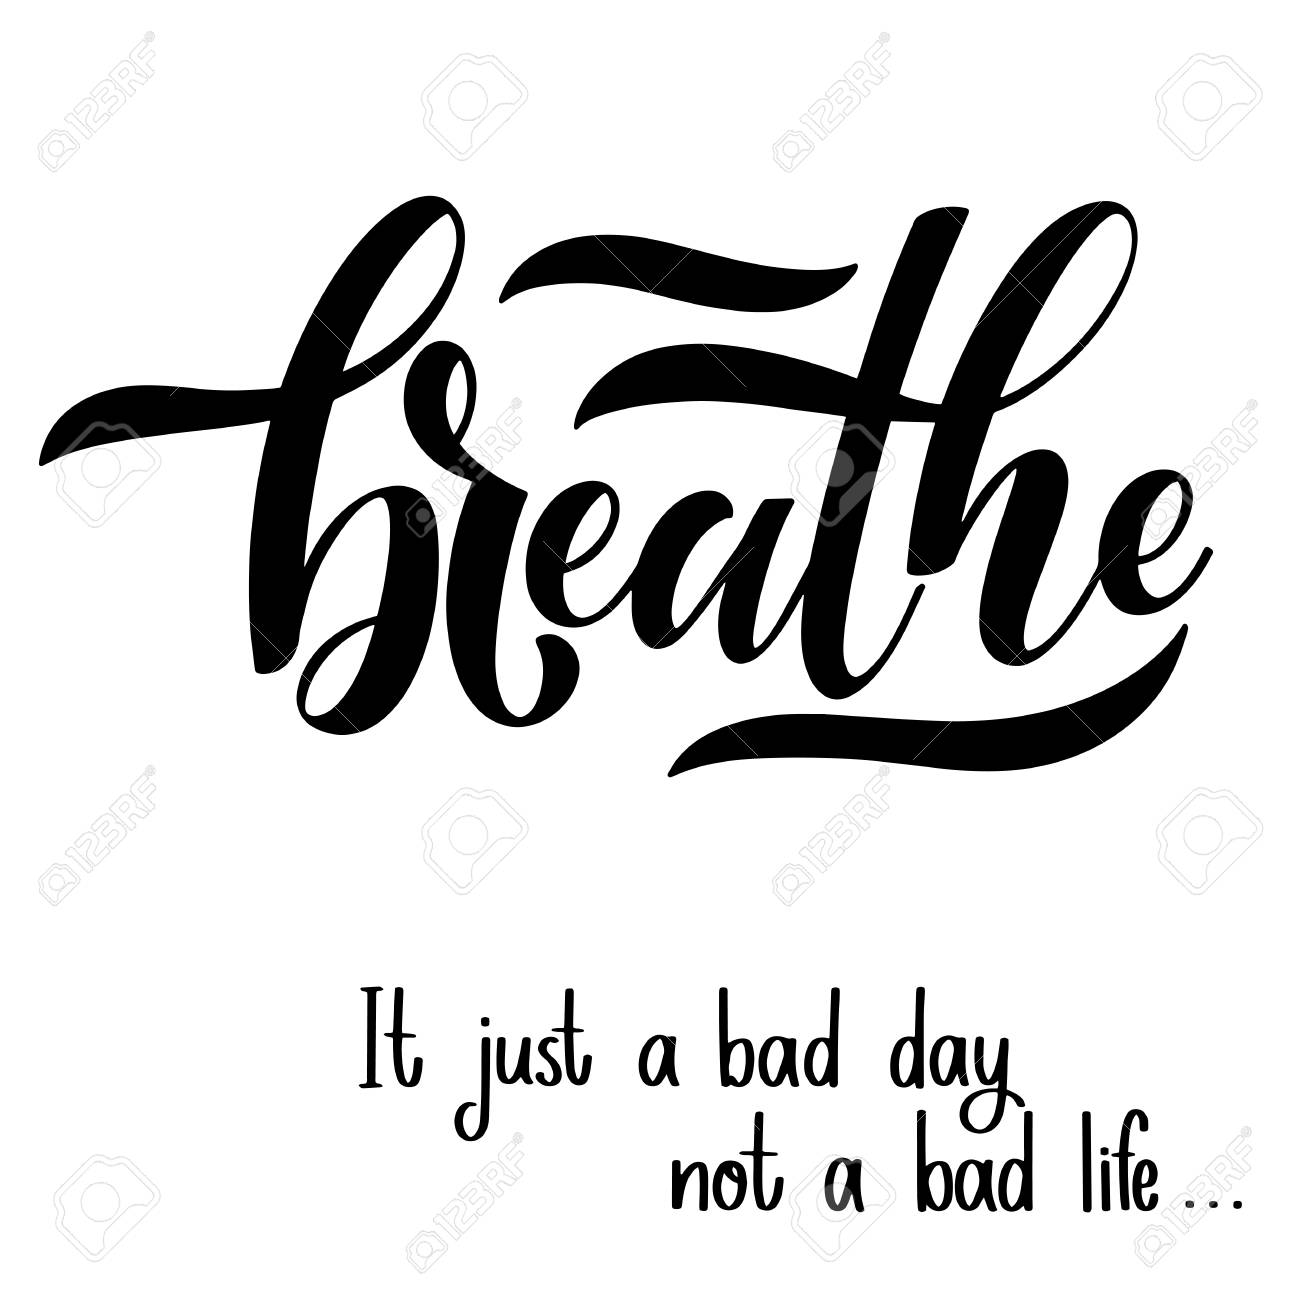 Motivational and Inspirational quotes for Mental Health Day. Breathe. It just a bad day not a bad life. Design for print, poster, invitation, t-shirt, badges. Vector illustration - 109762678